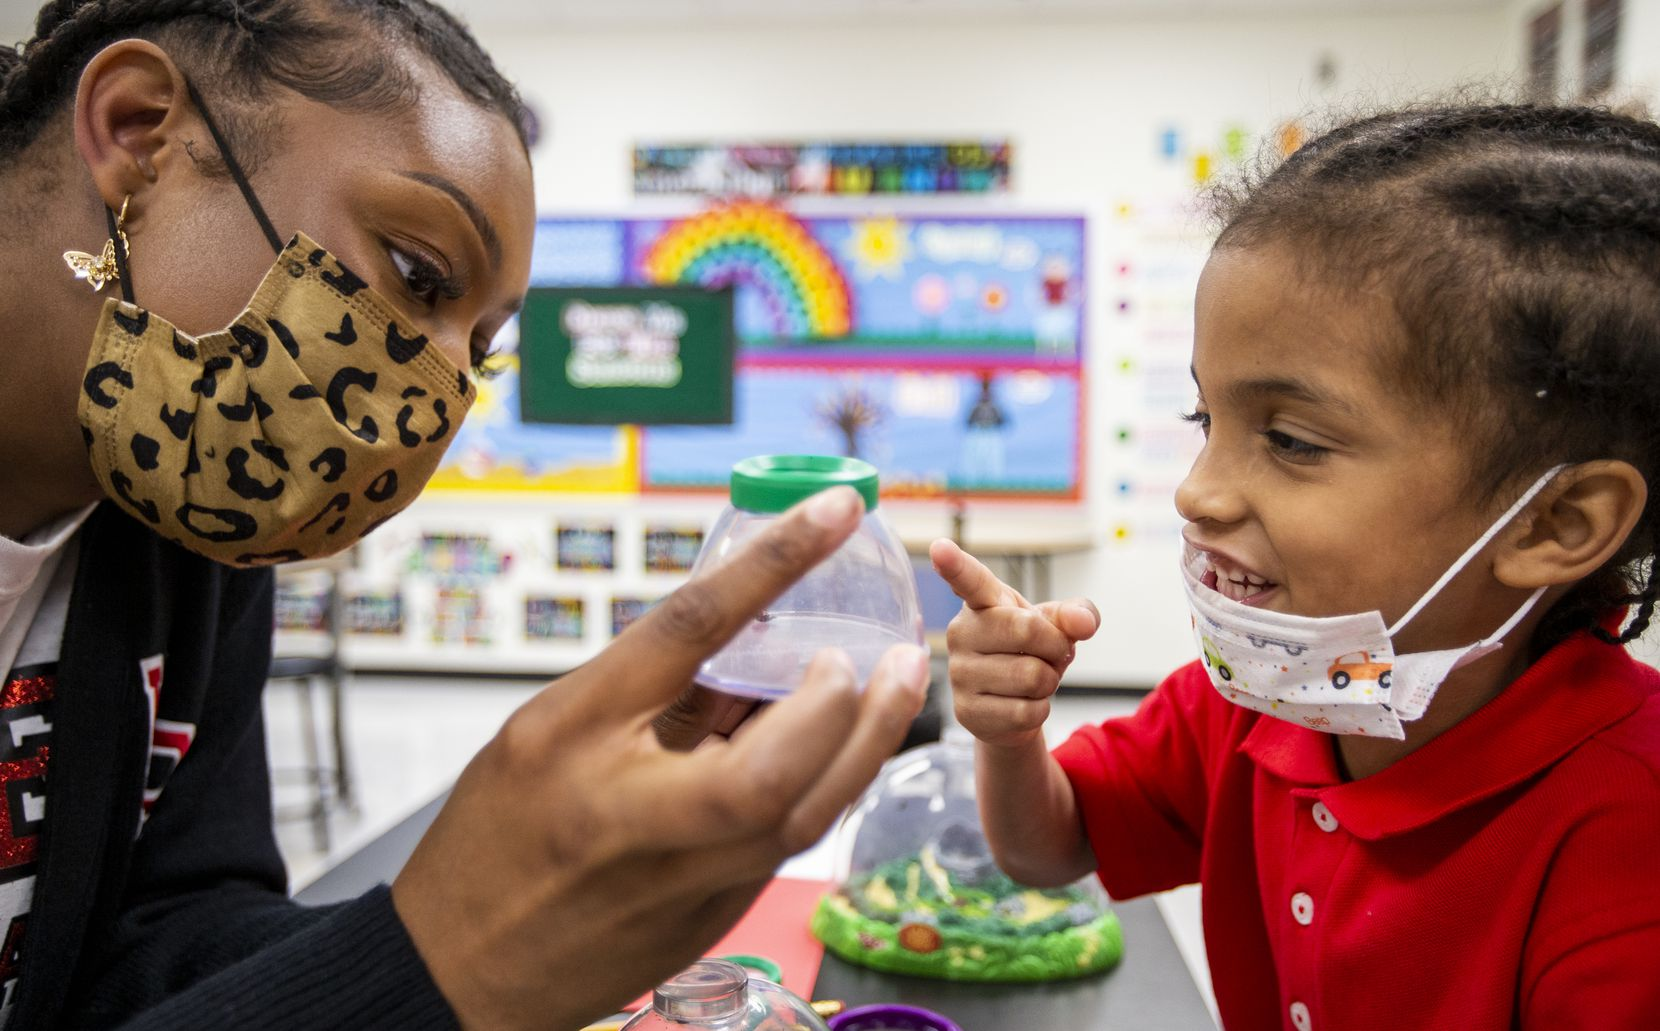 Prekindergarten assistant teacher Alexis Alexander shows Prosper Gilkey a closeup view of a ladybug during a pre-K through second grade science lab at High Pointe Elementary School in Cedar Hill last month. In the lab students learn age-specific science lessons. (Brandon Wade/Special Contributor)